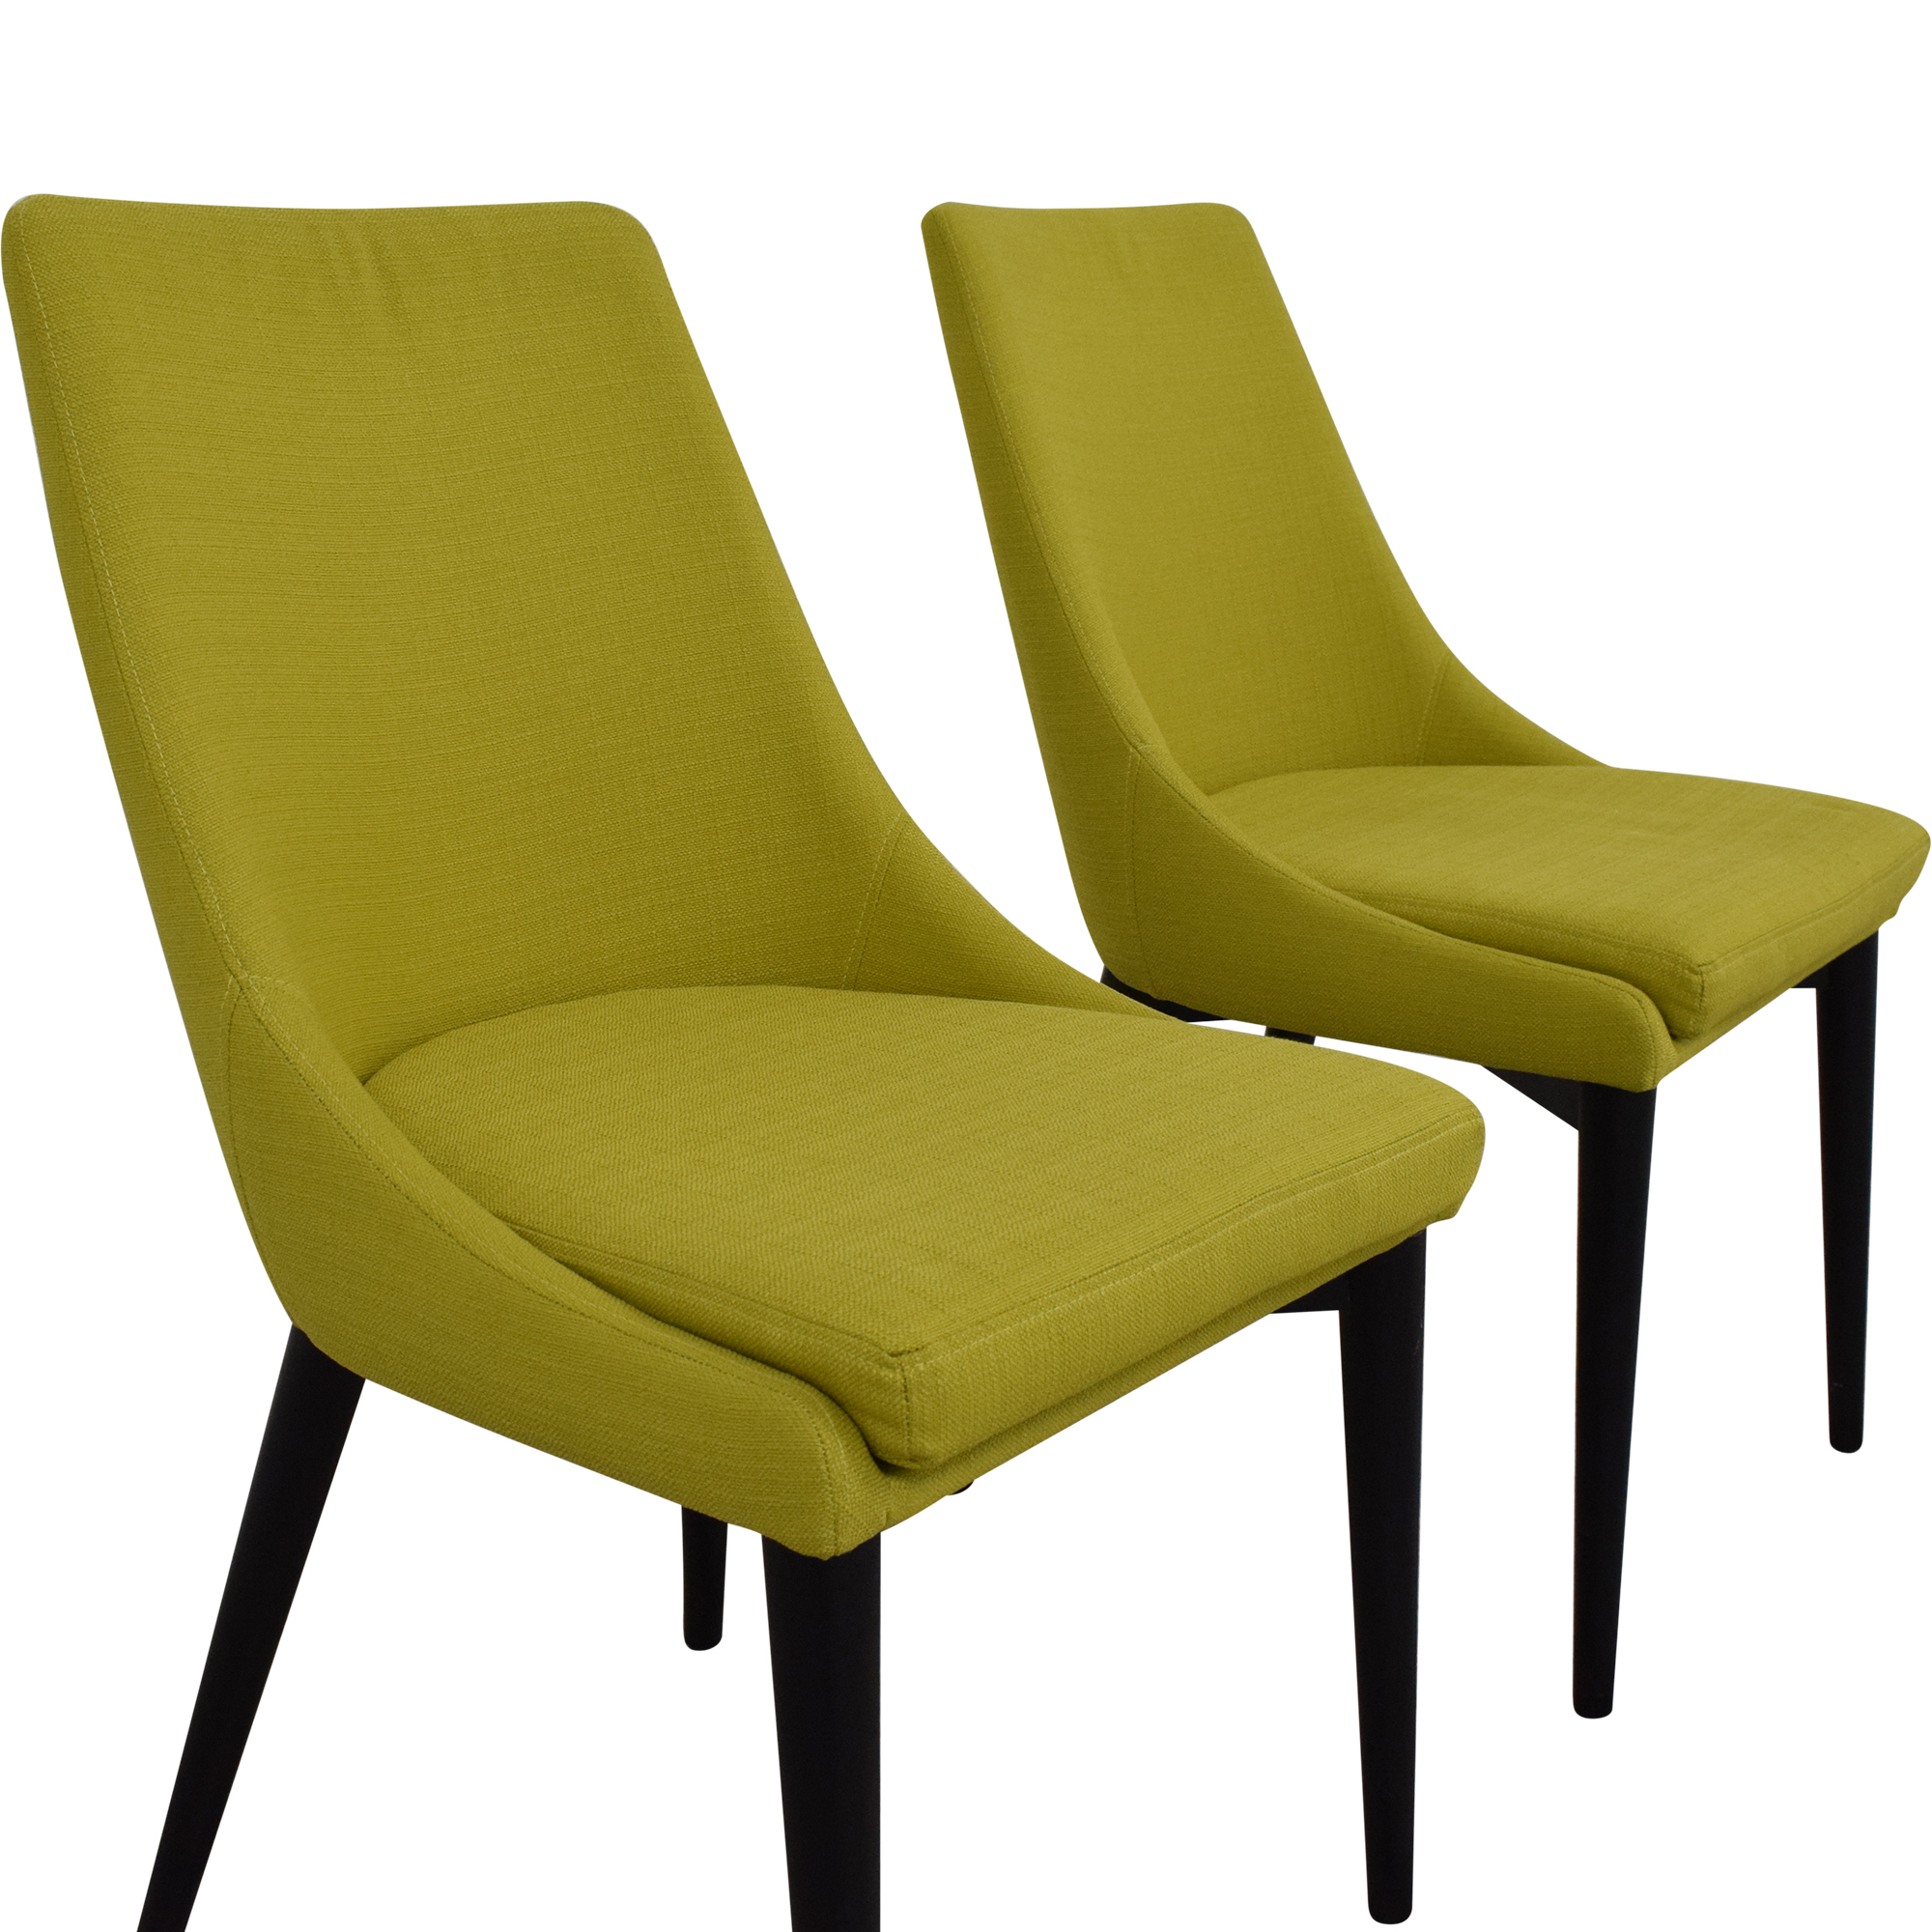 buy Modway Modway Viscount Dining Chairs online